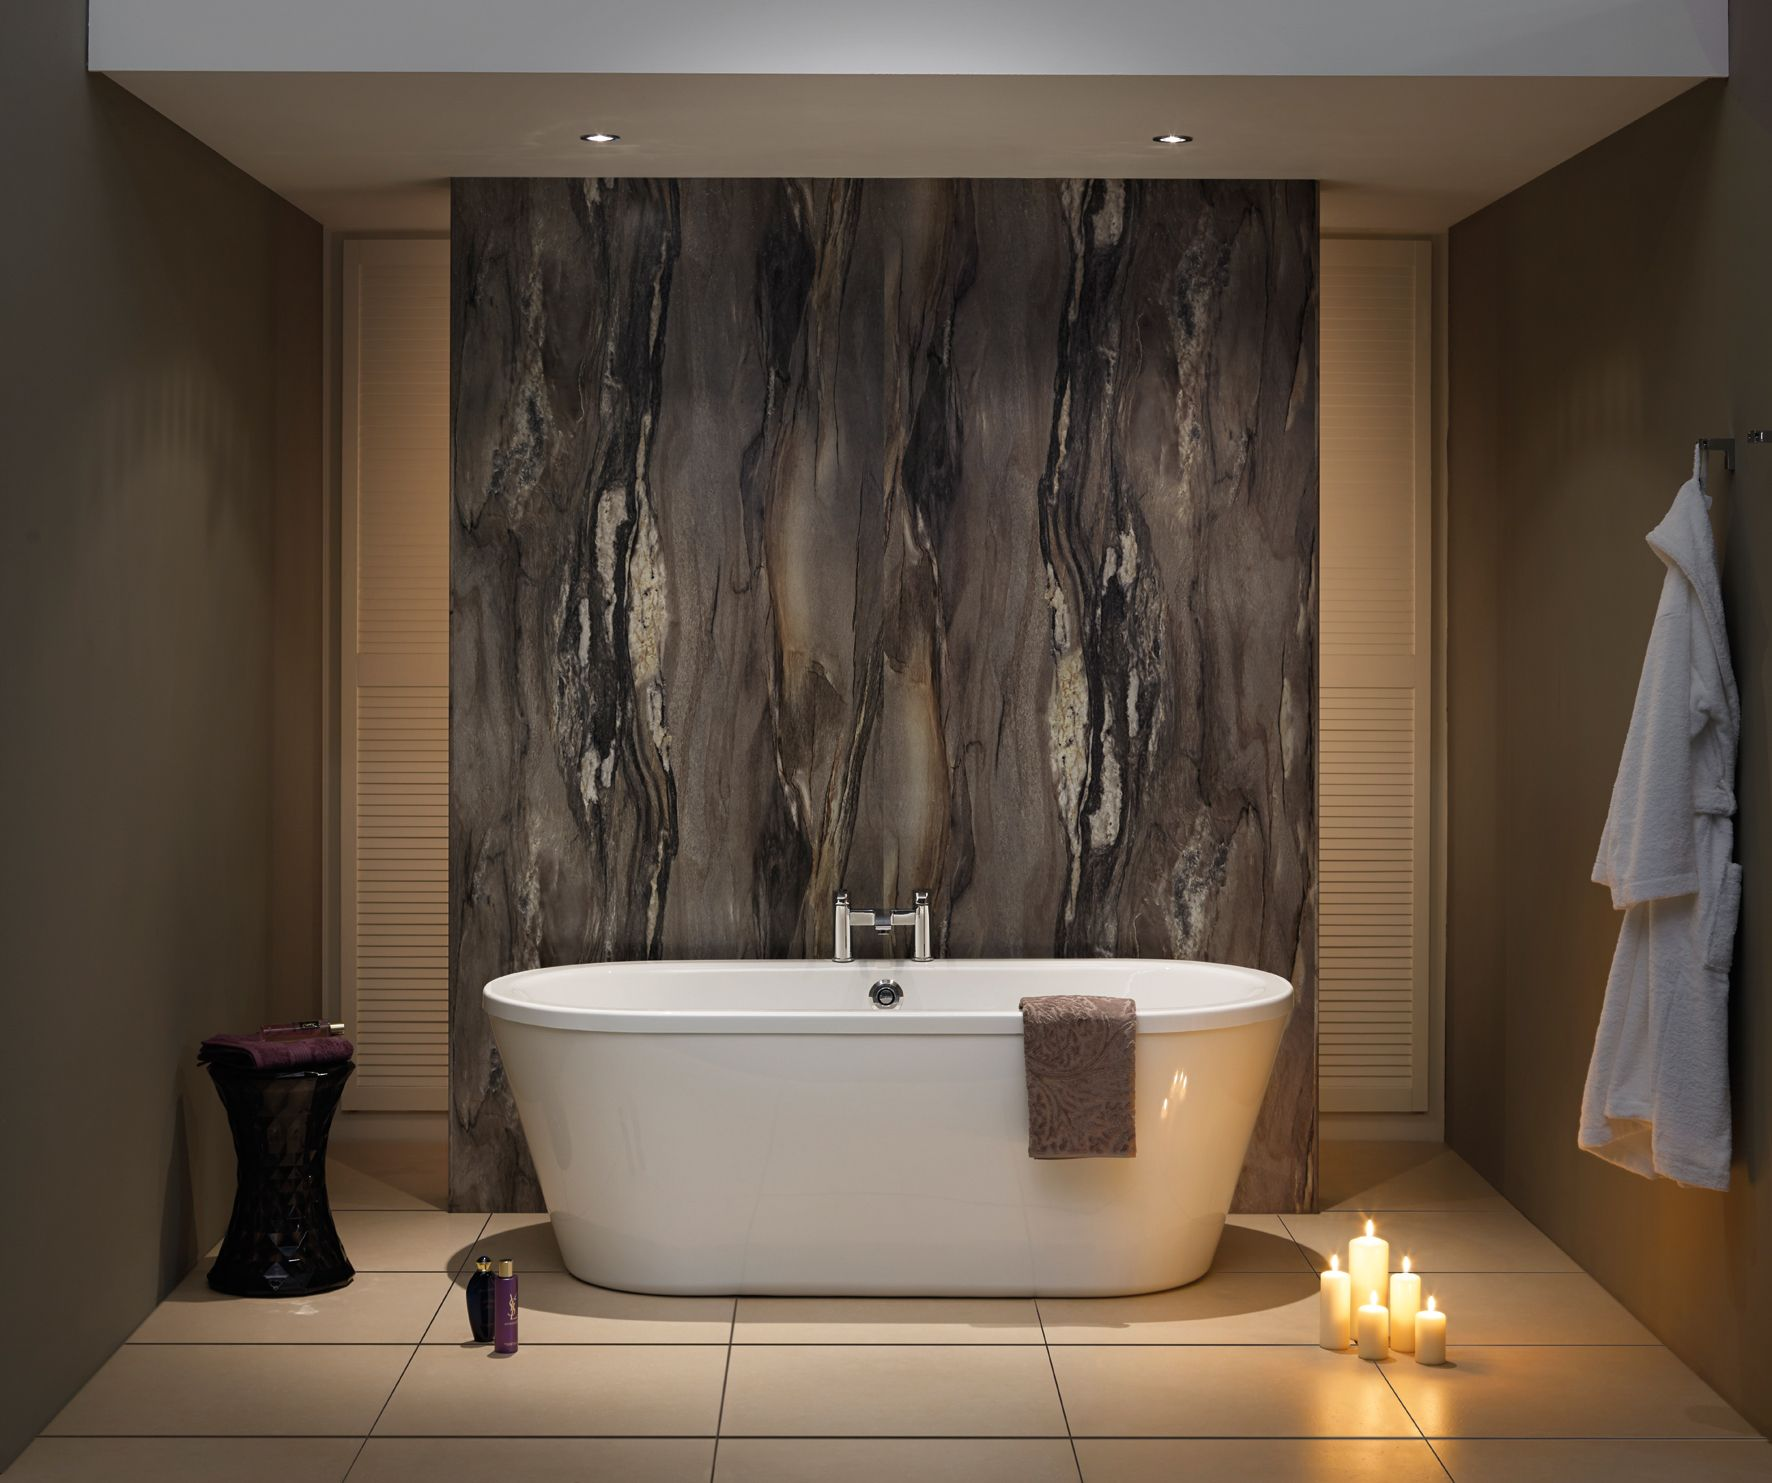 Nuance Laminate Panelling Is An Ideal Alternative To Tiling There Are No Grout Lines To Scrub